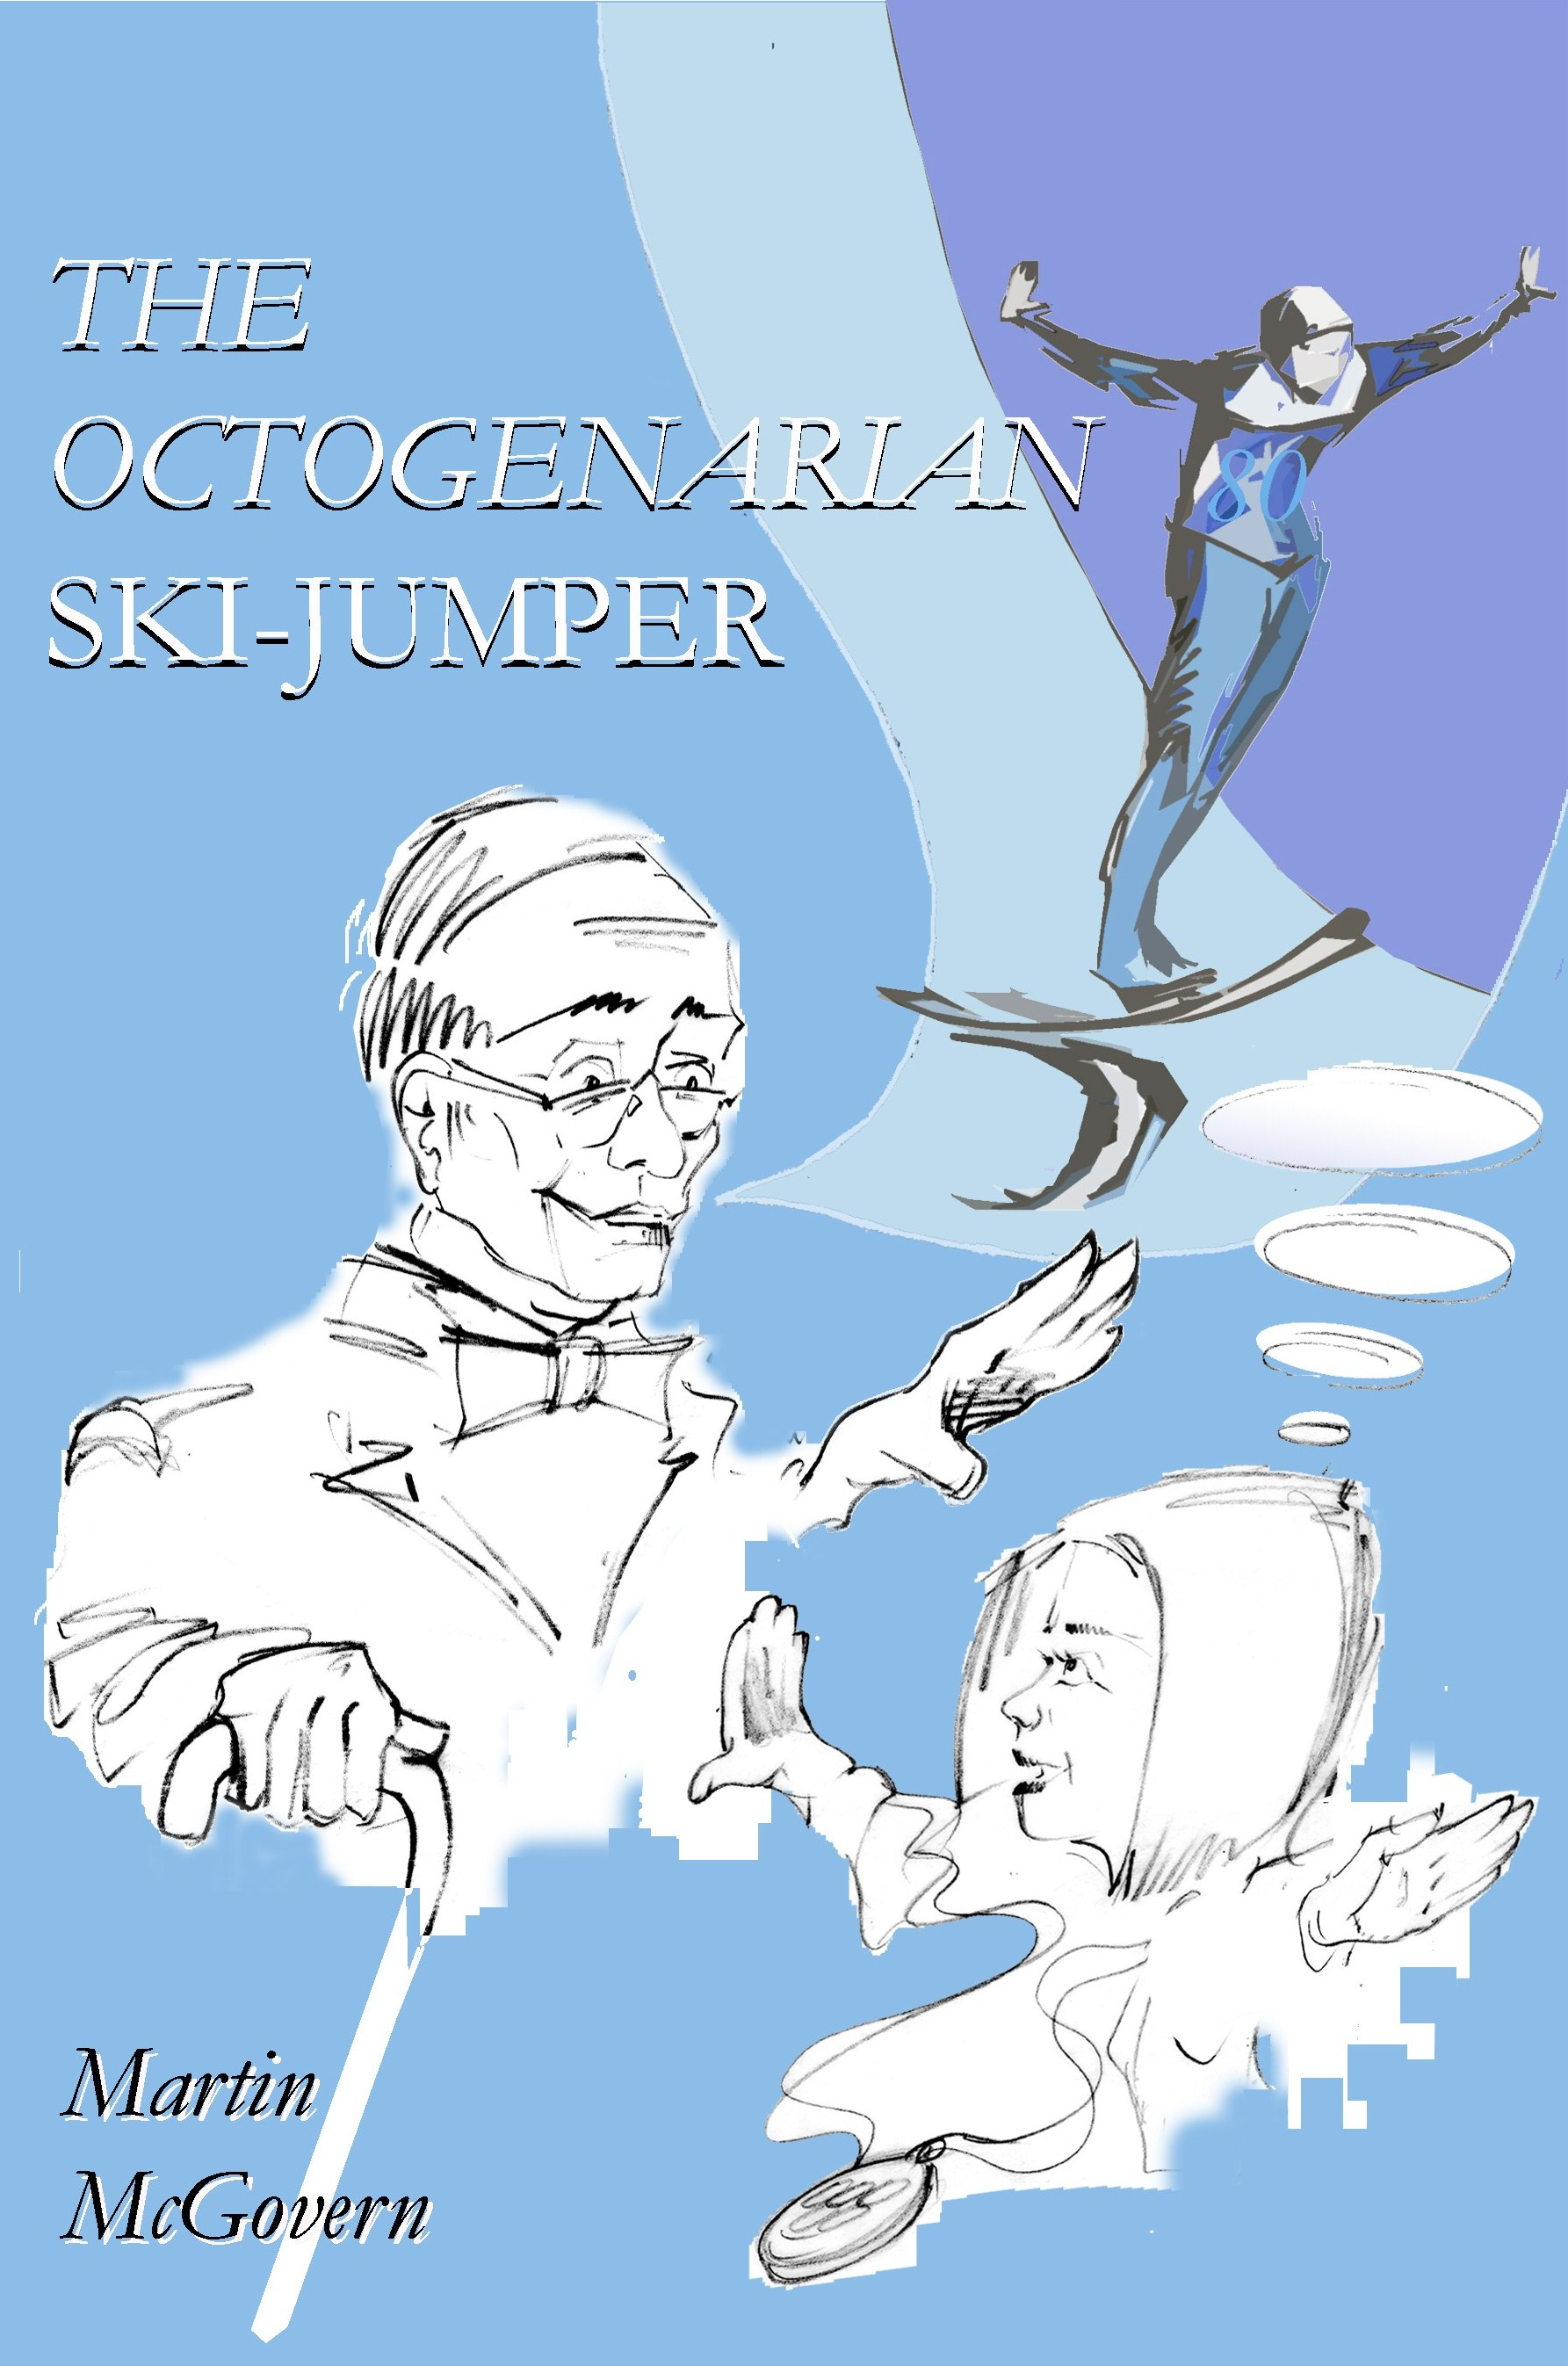 Age 23 - The Octogenarian Ski-jumper